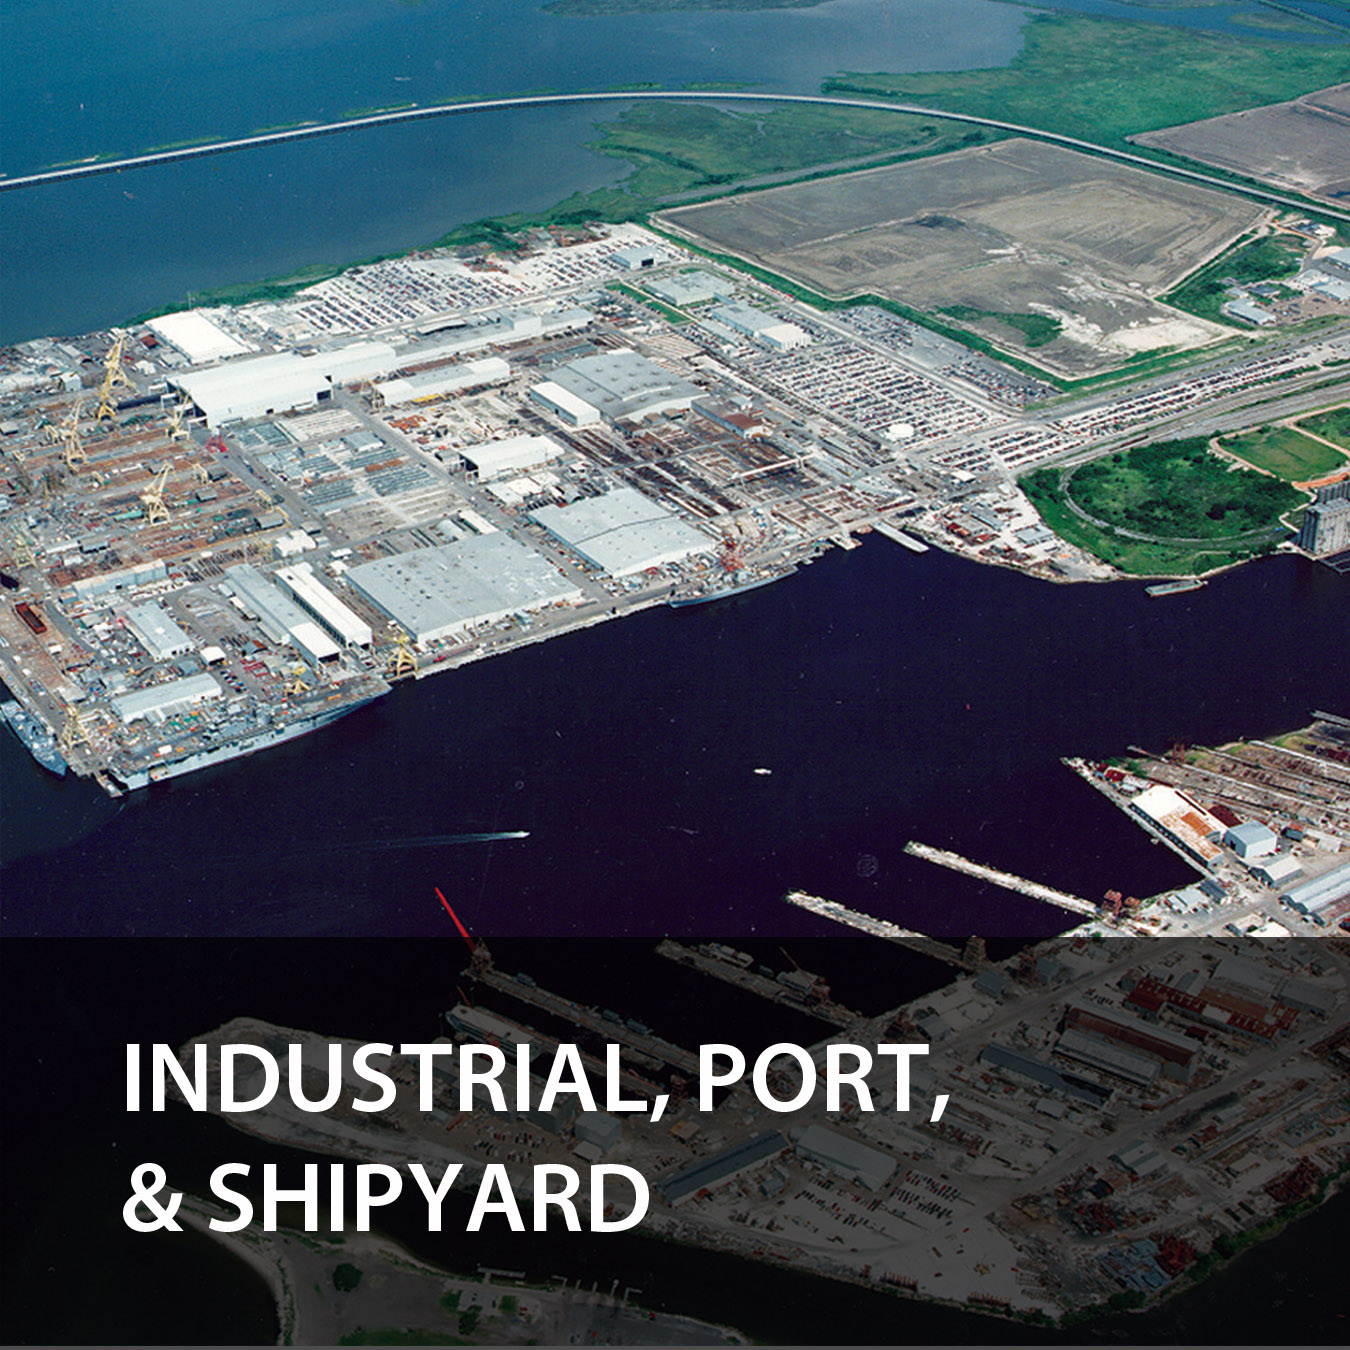 Industrial, Port, & Shipyard